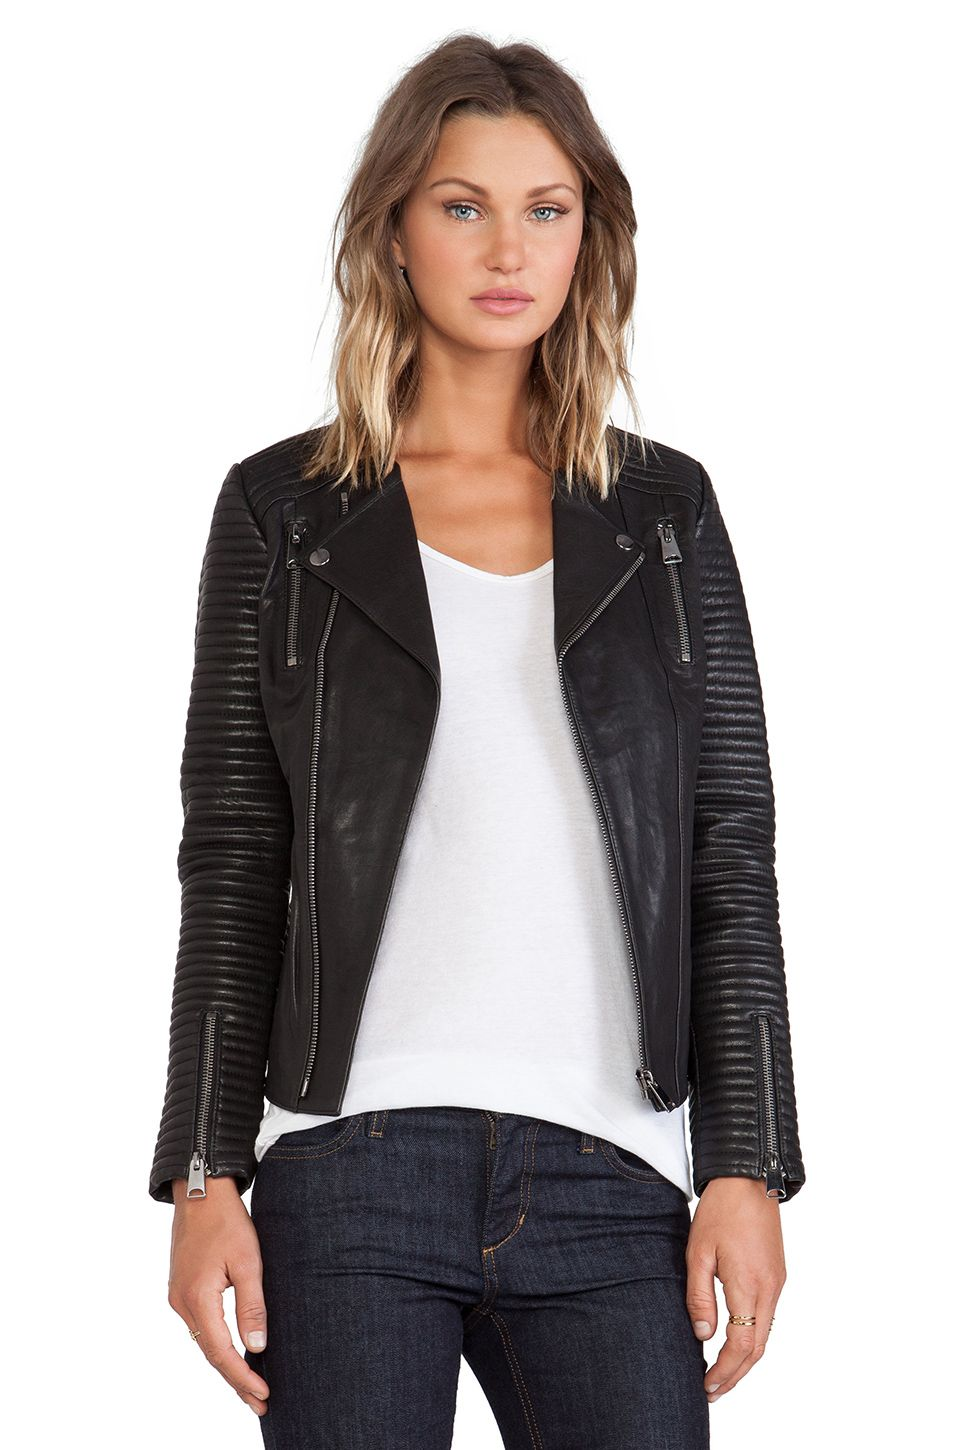 ANINE BING Classic Leather Jacket in Black at